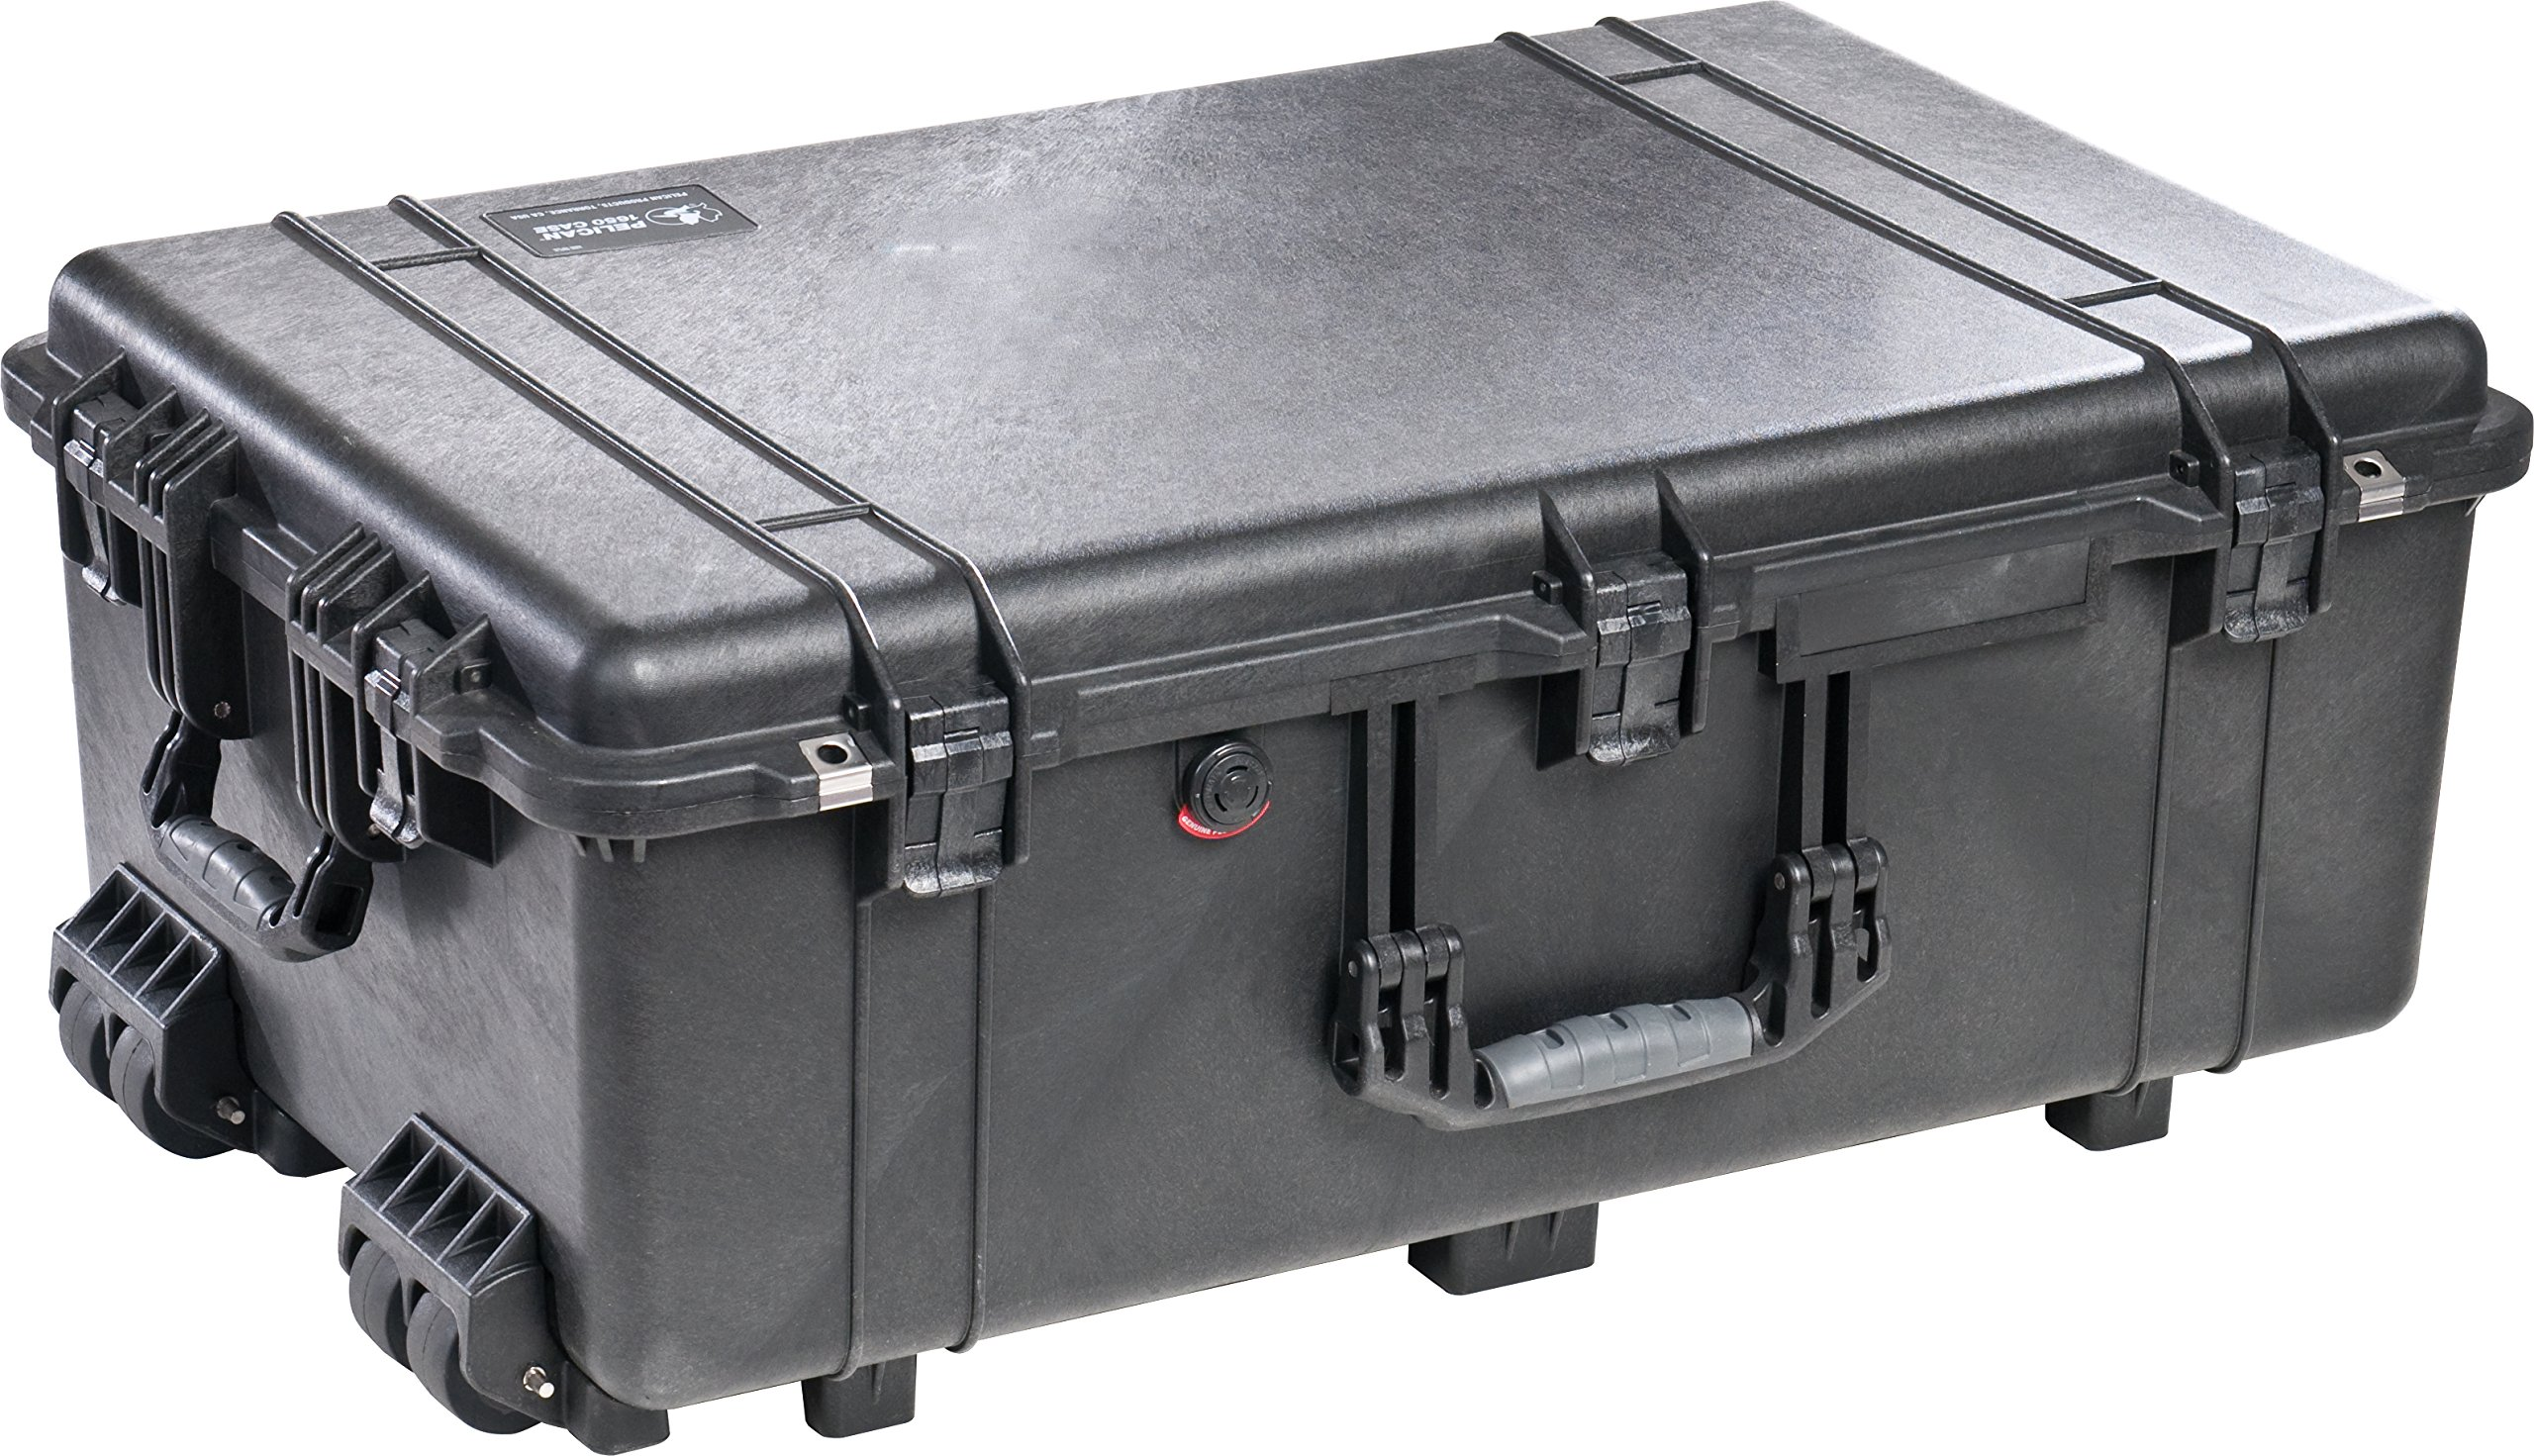 Pelican 1650 Case With Foam (Black) by Pelican